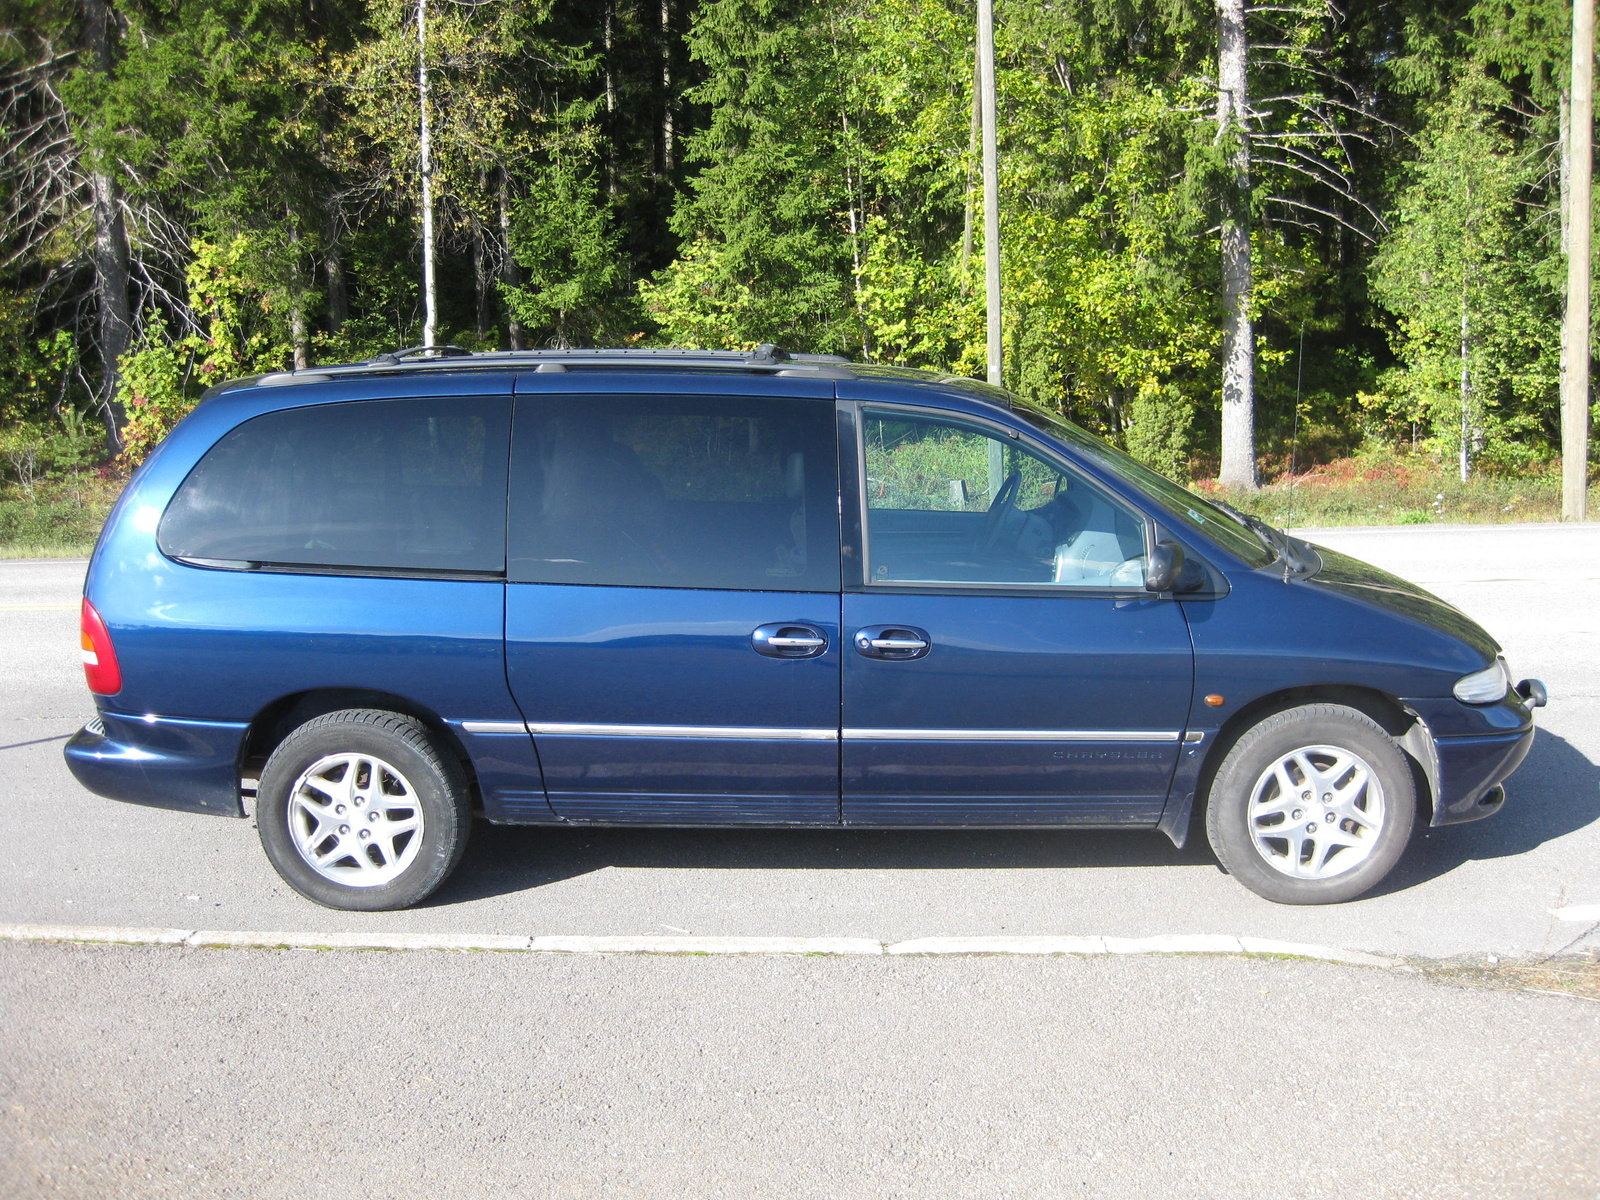 chrysler voyager 2000 - photo #40